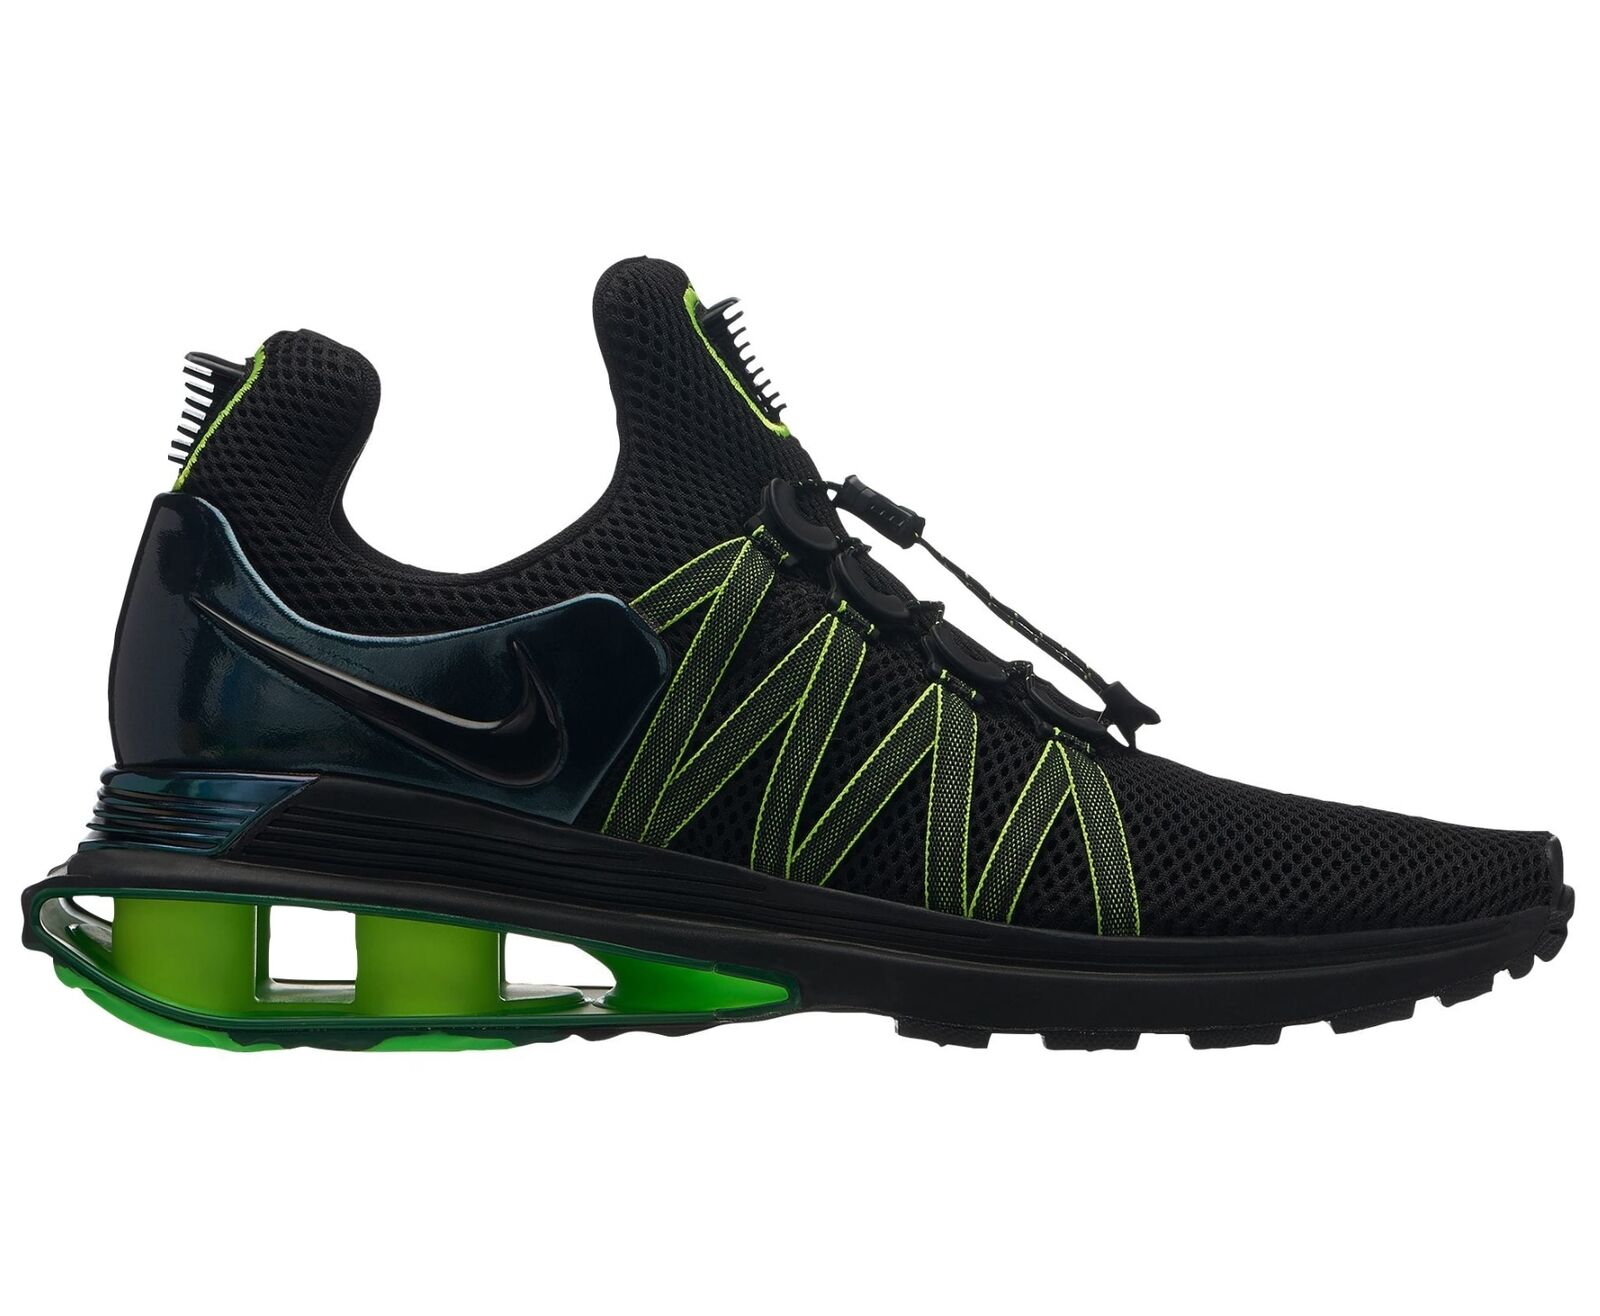 Nike Shox Gravity Mens AR1999-003 Black Gorge Green Lime Running shoes Size 11.5